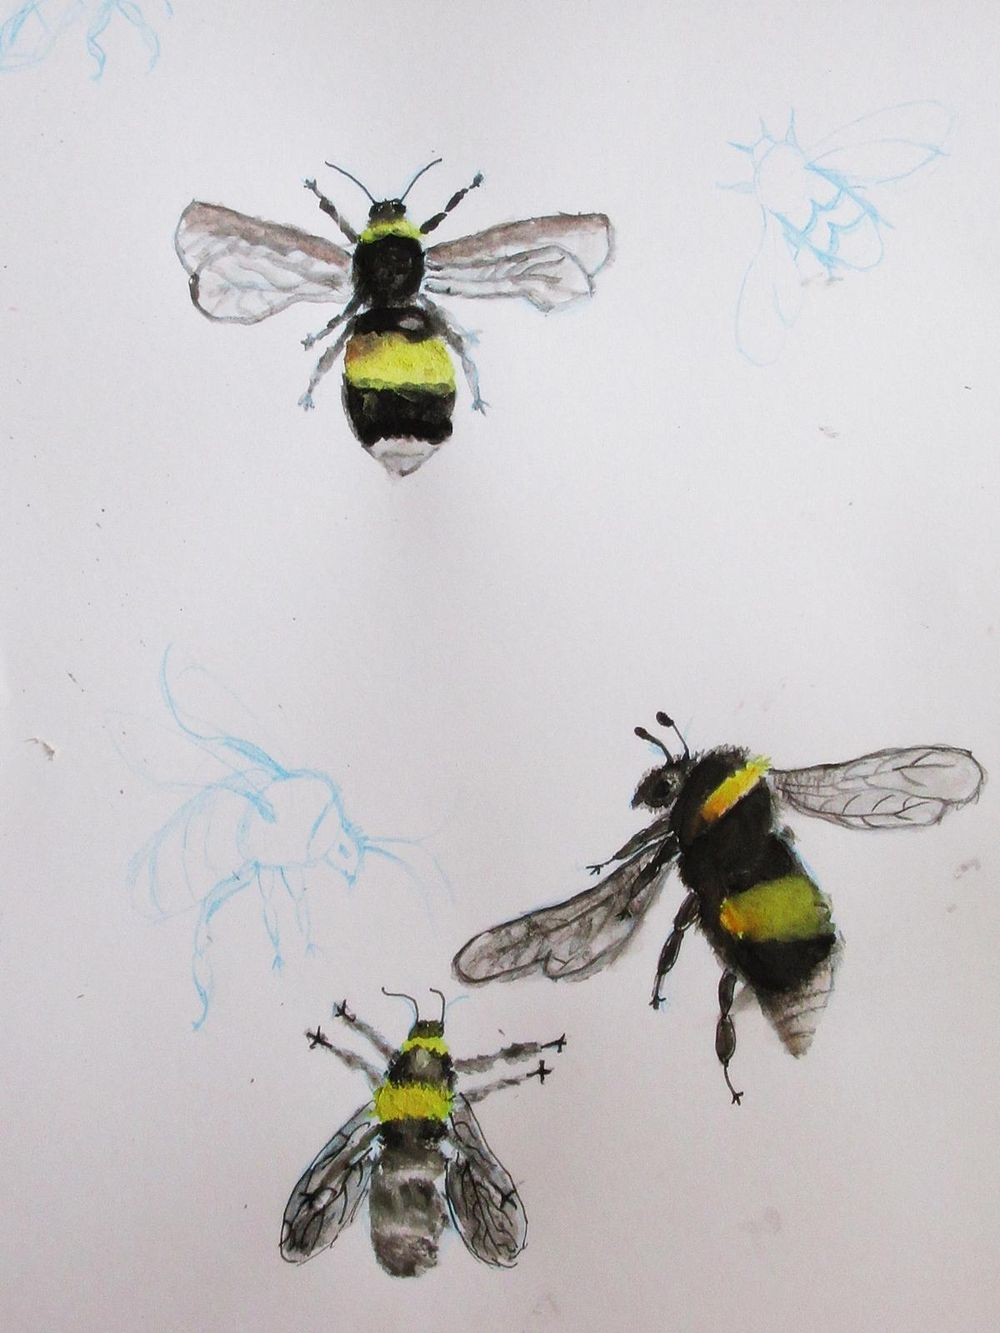 bumblebee - image 1 - student project